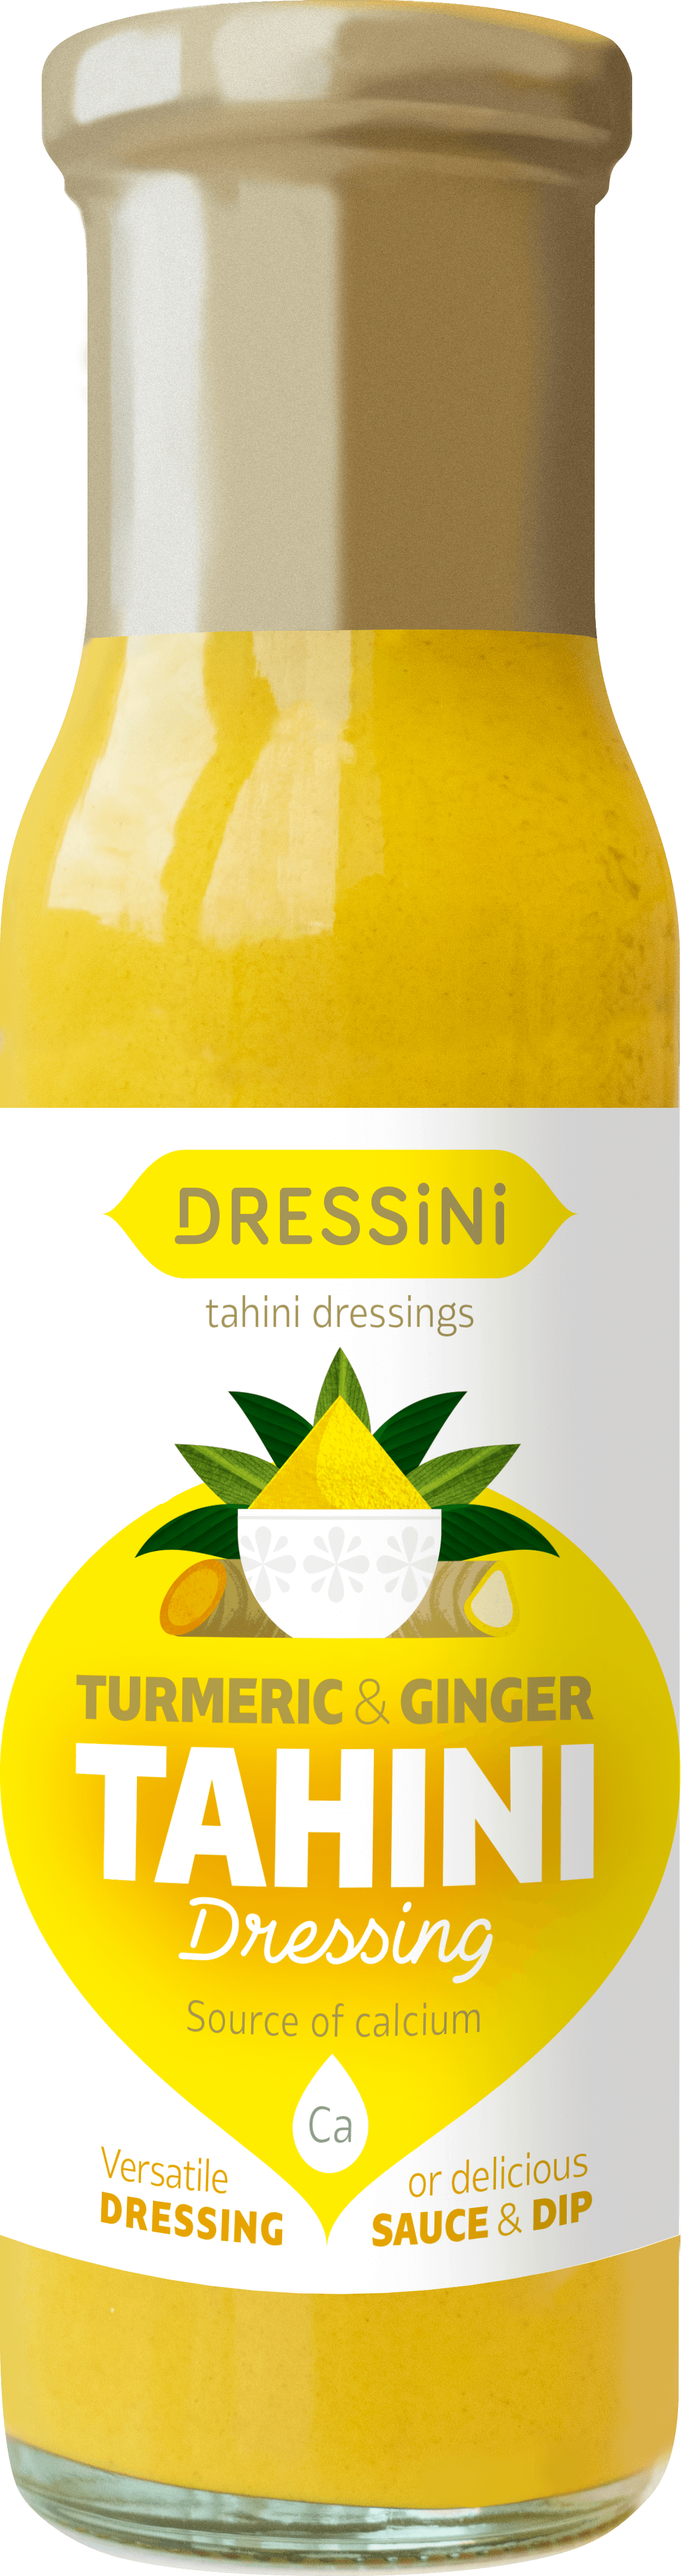 Dressini Turmeric and Ginger